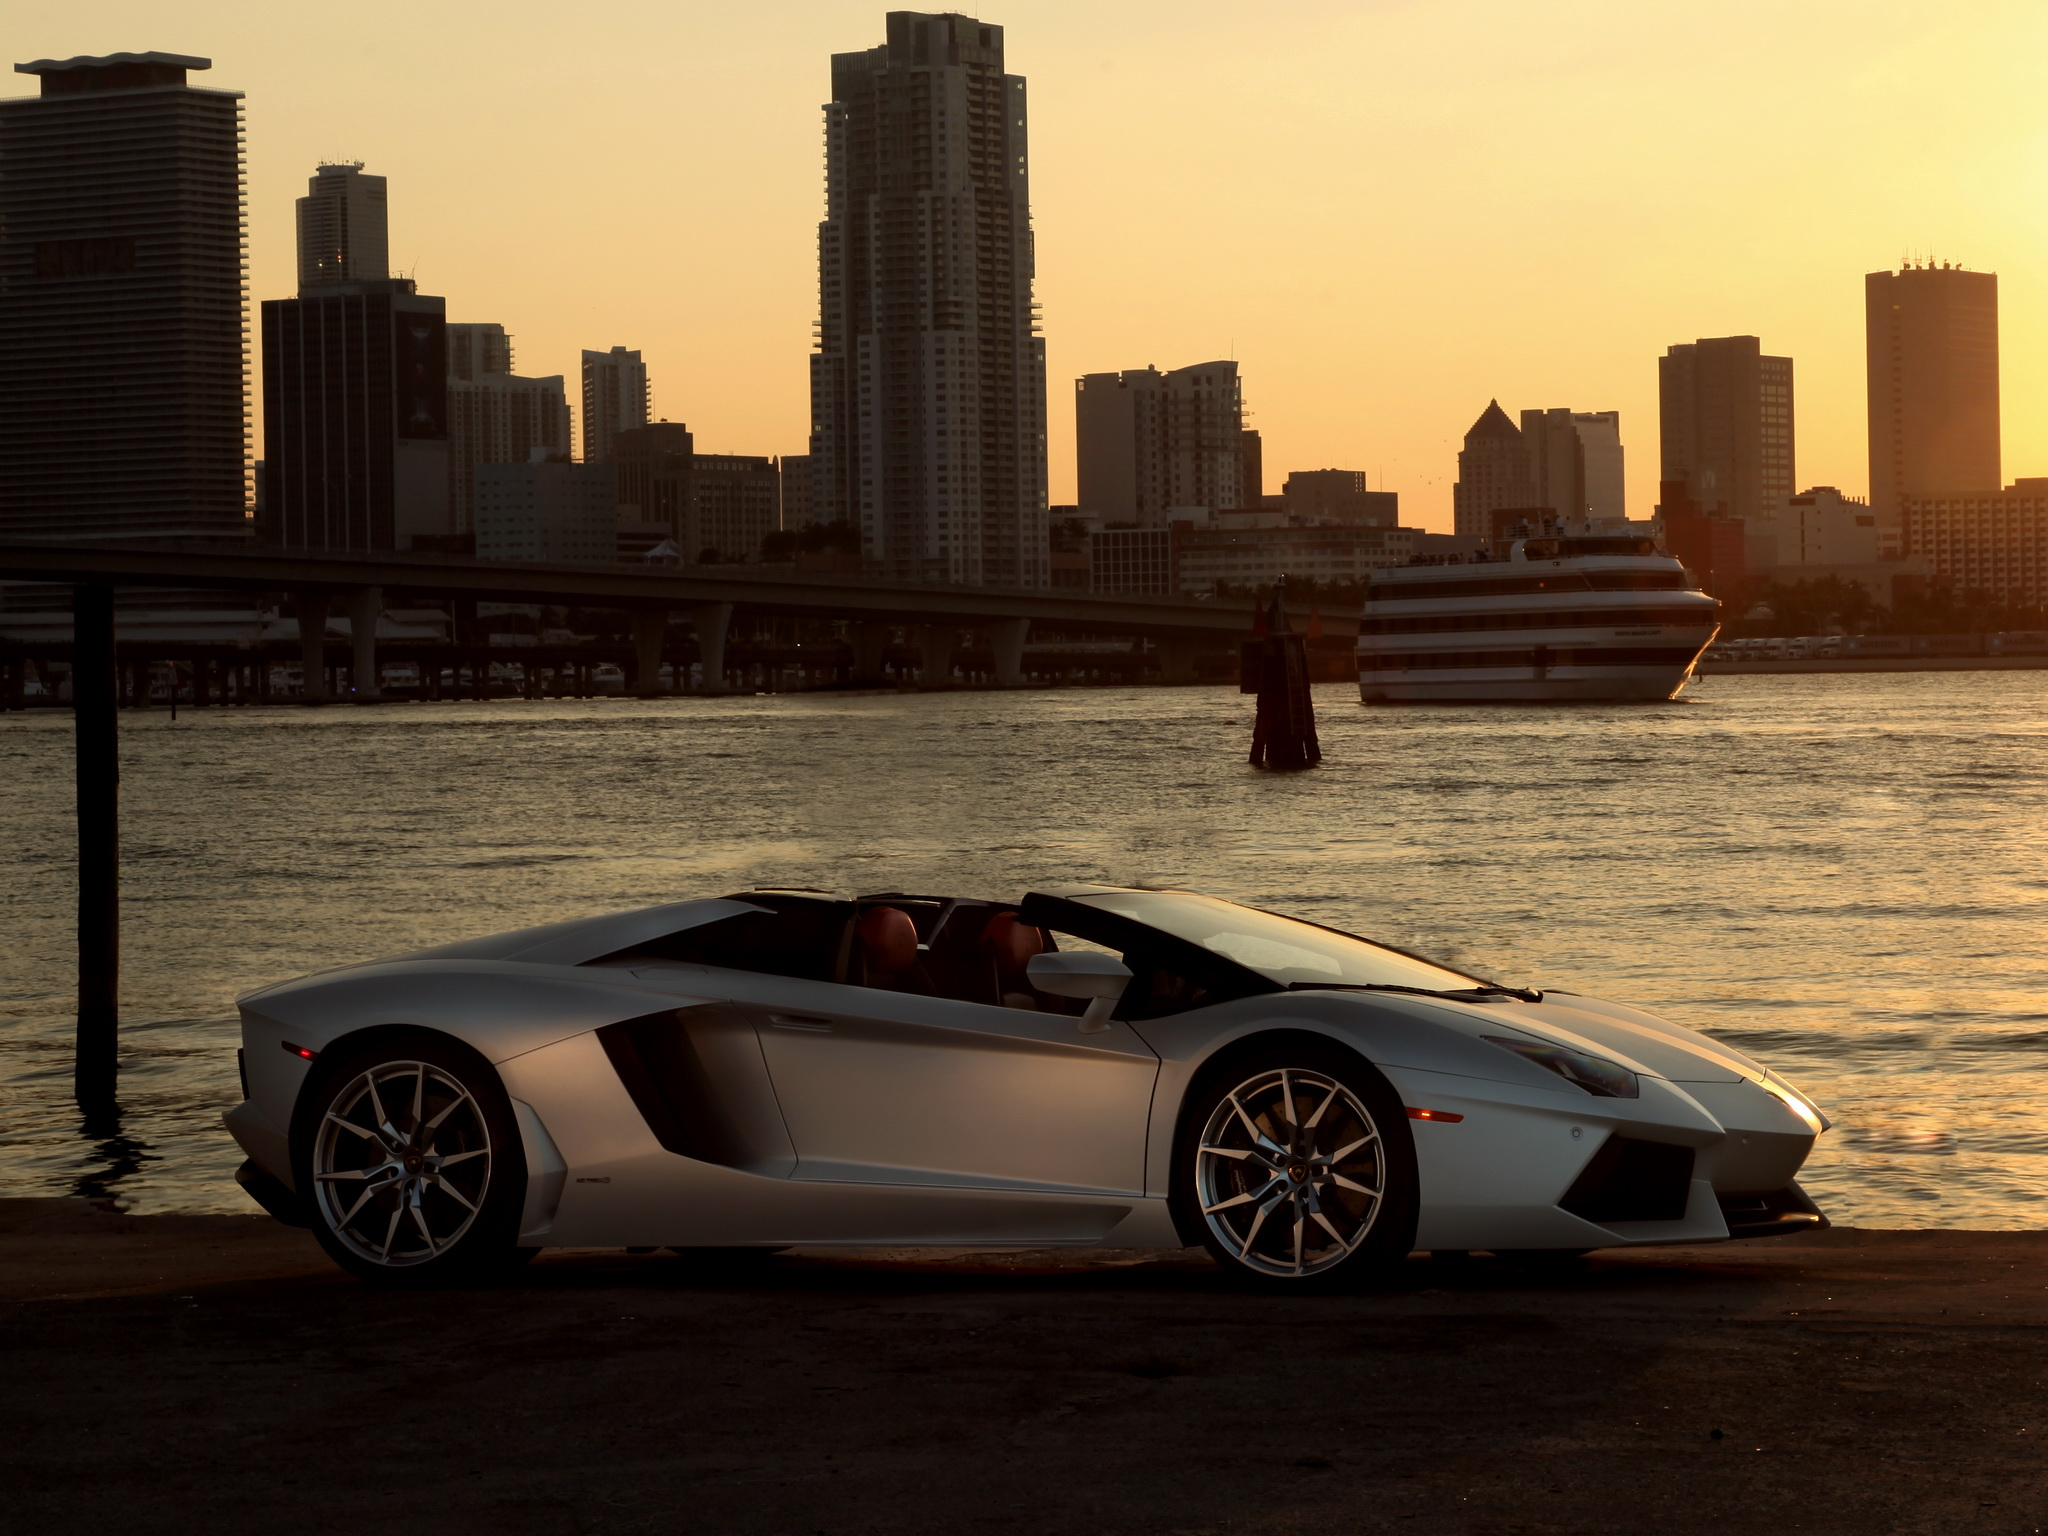 2014 Lamborghini Aventador Roadster supercar silver cities wallpaper 2048x1536